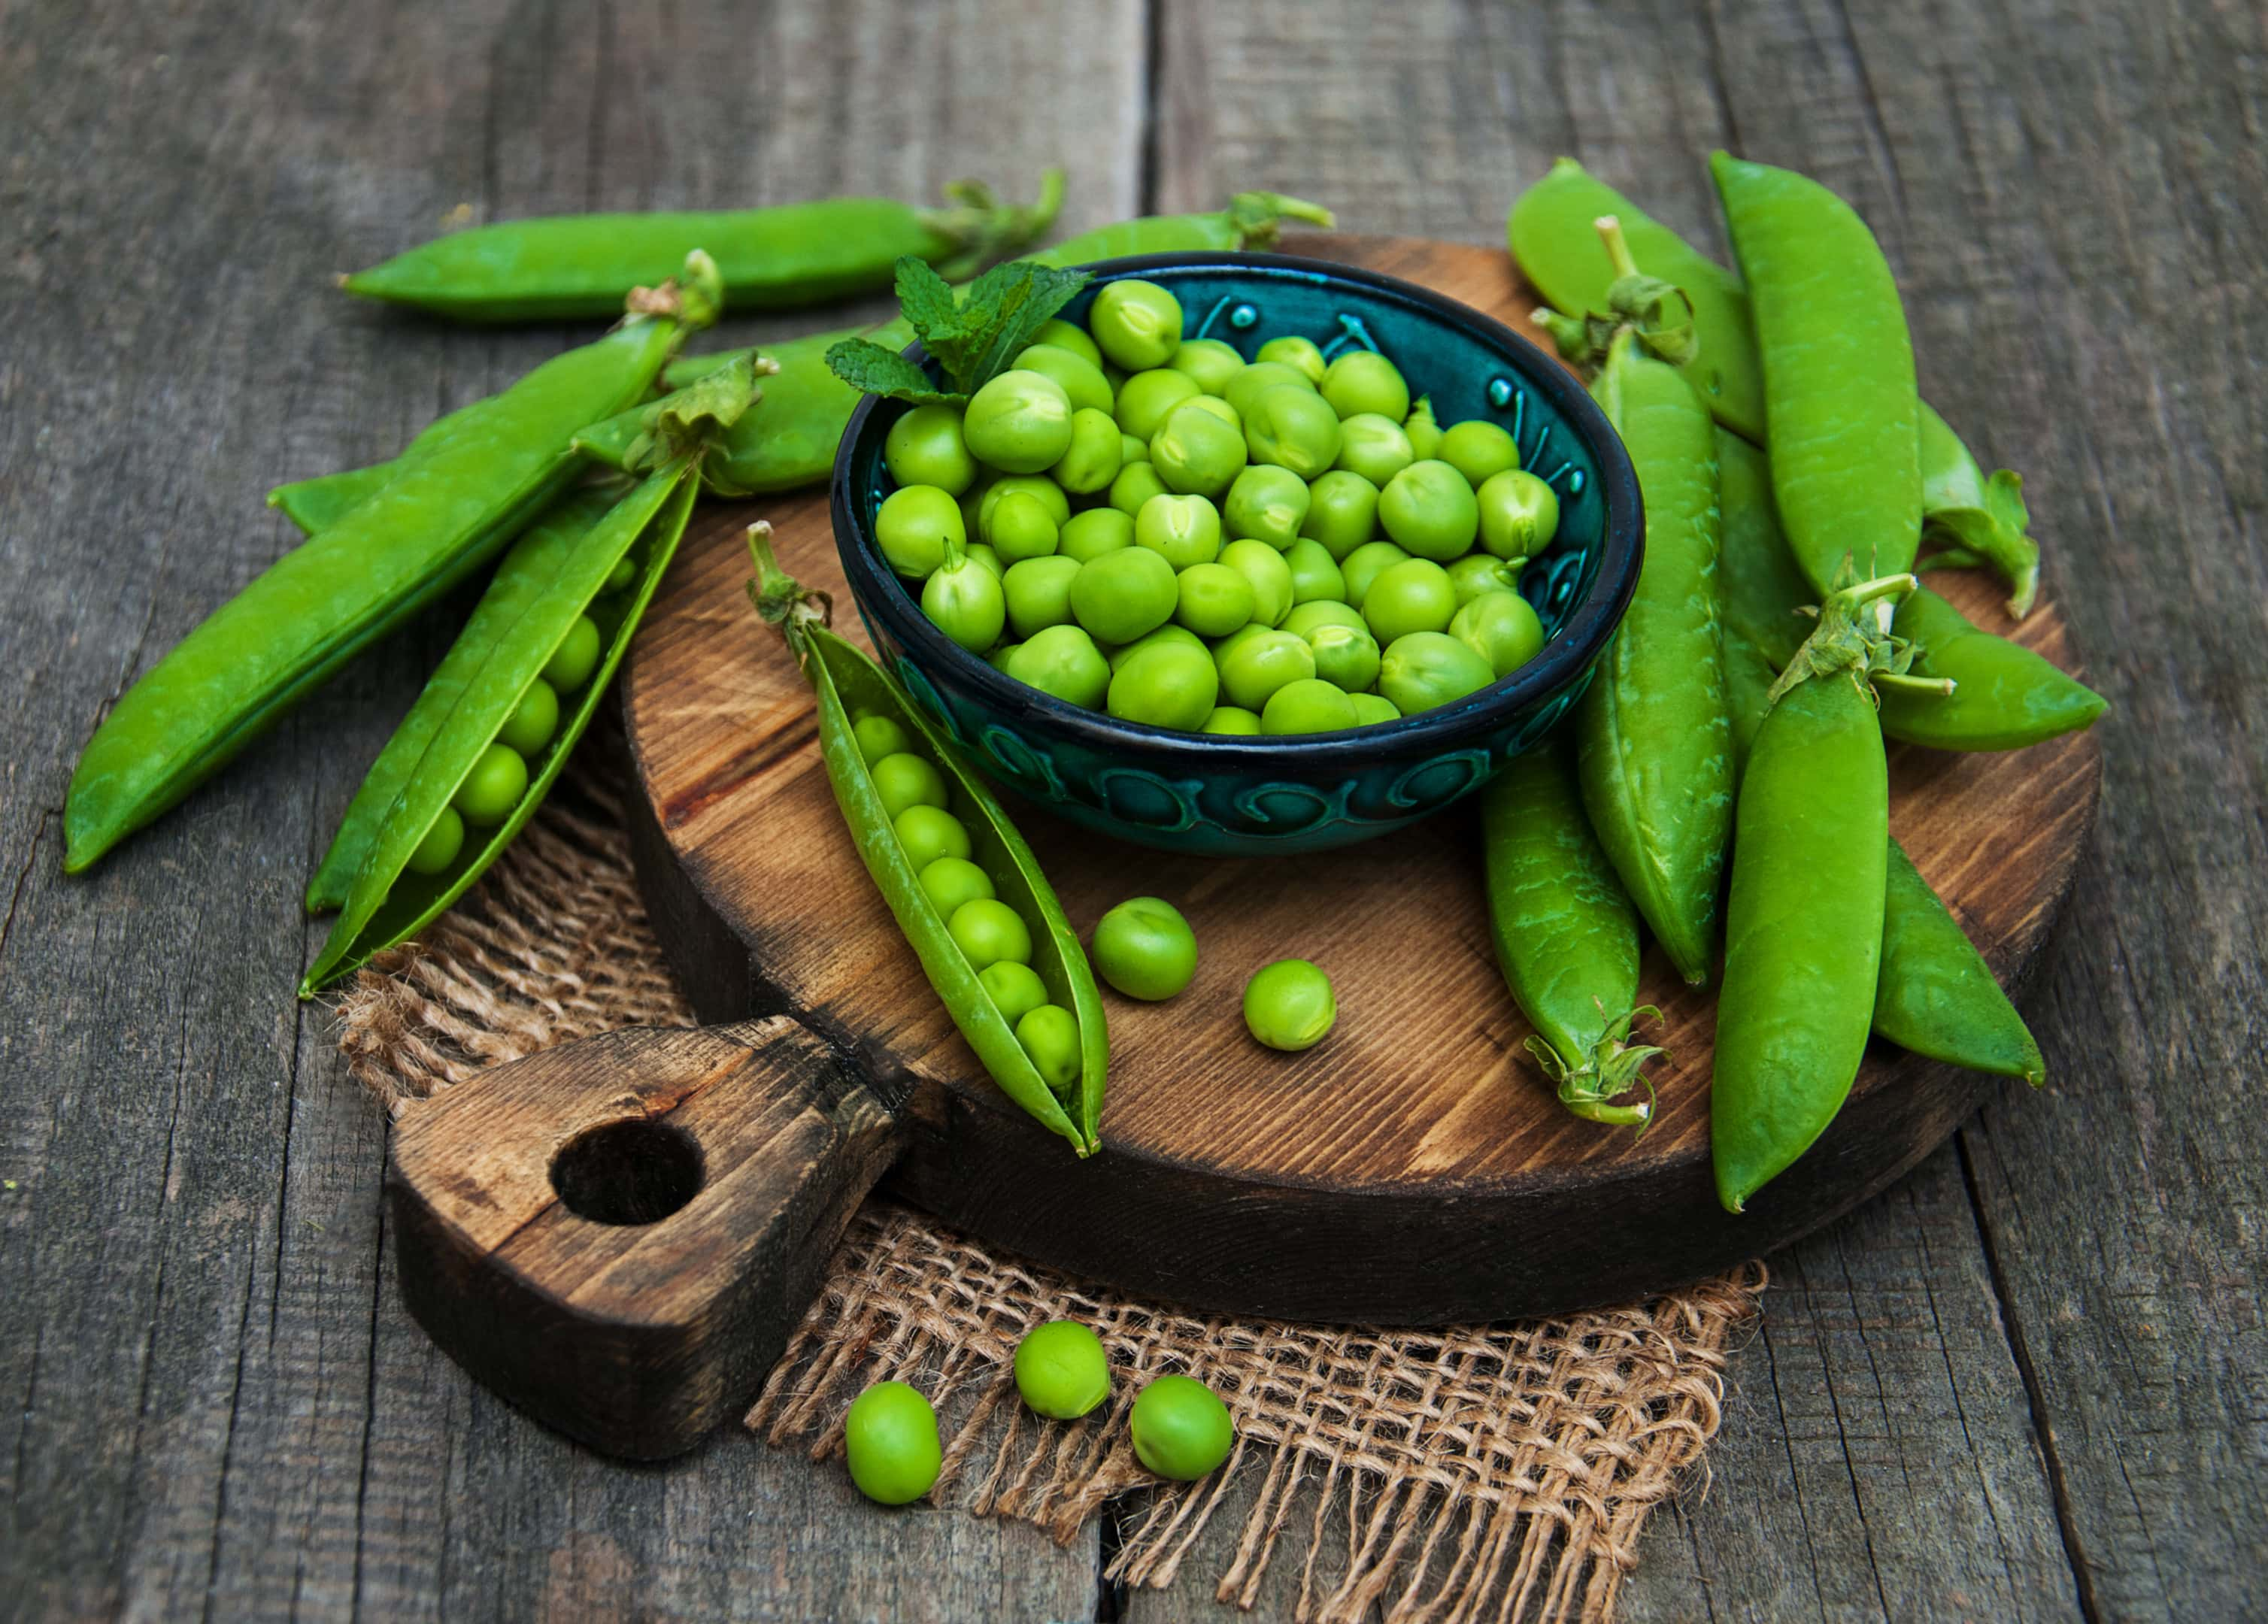 Fresh green peas on wooden board